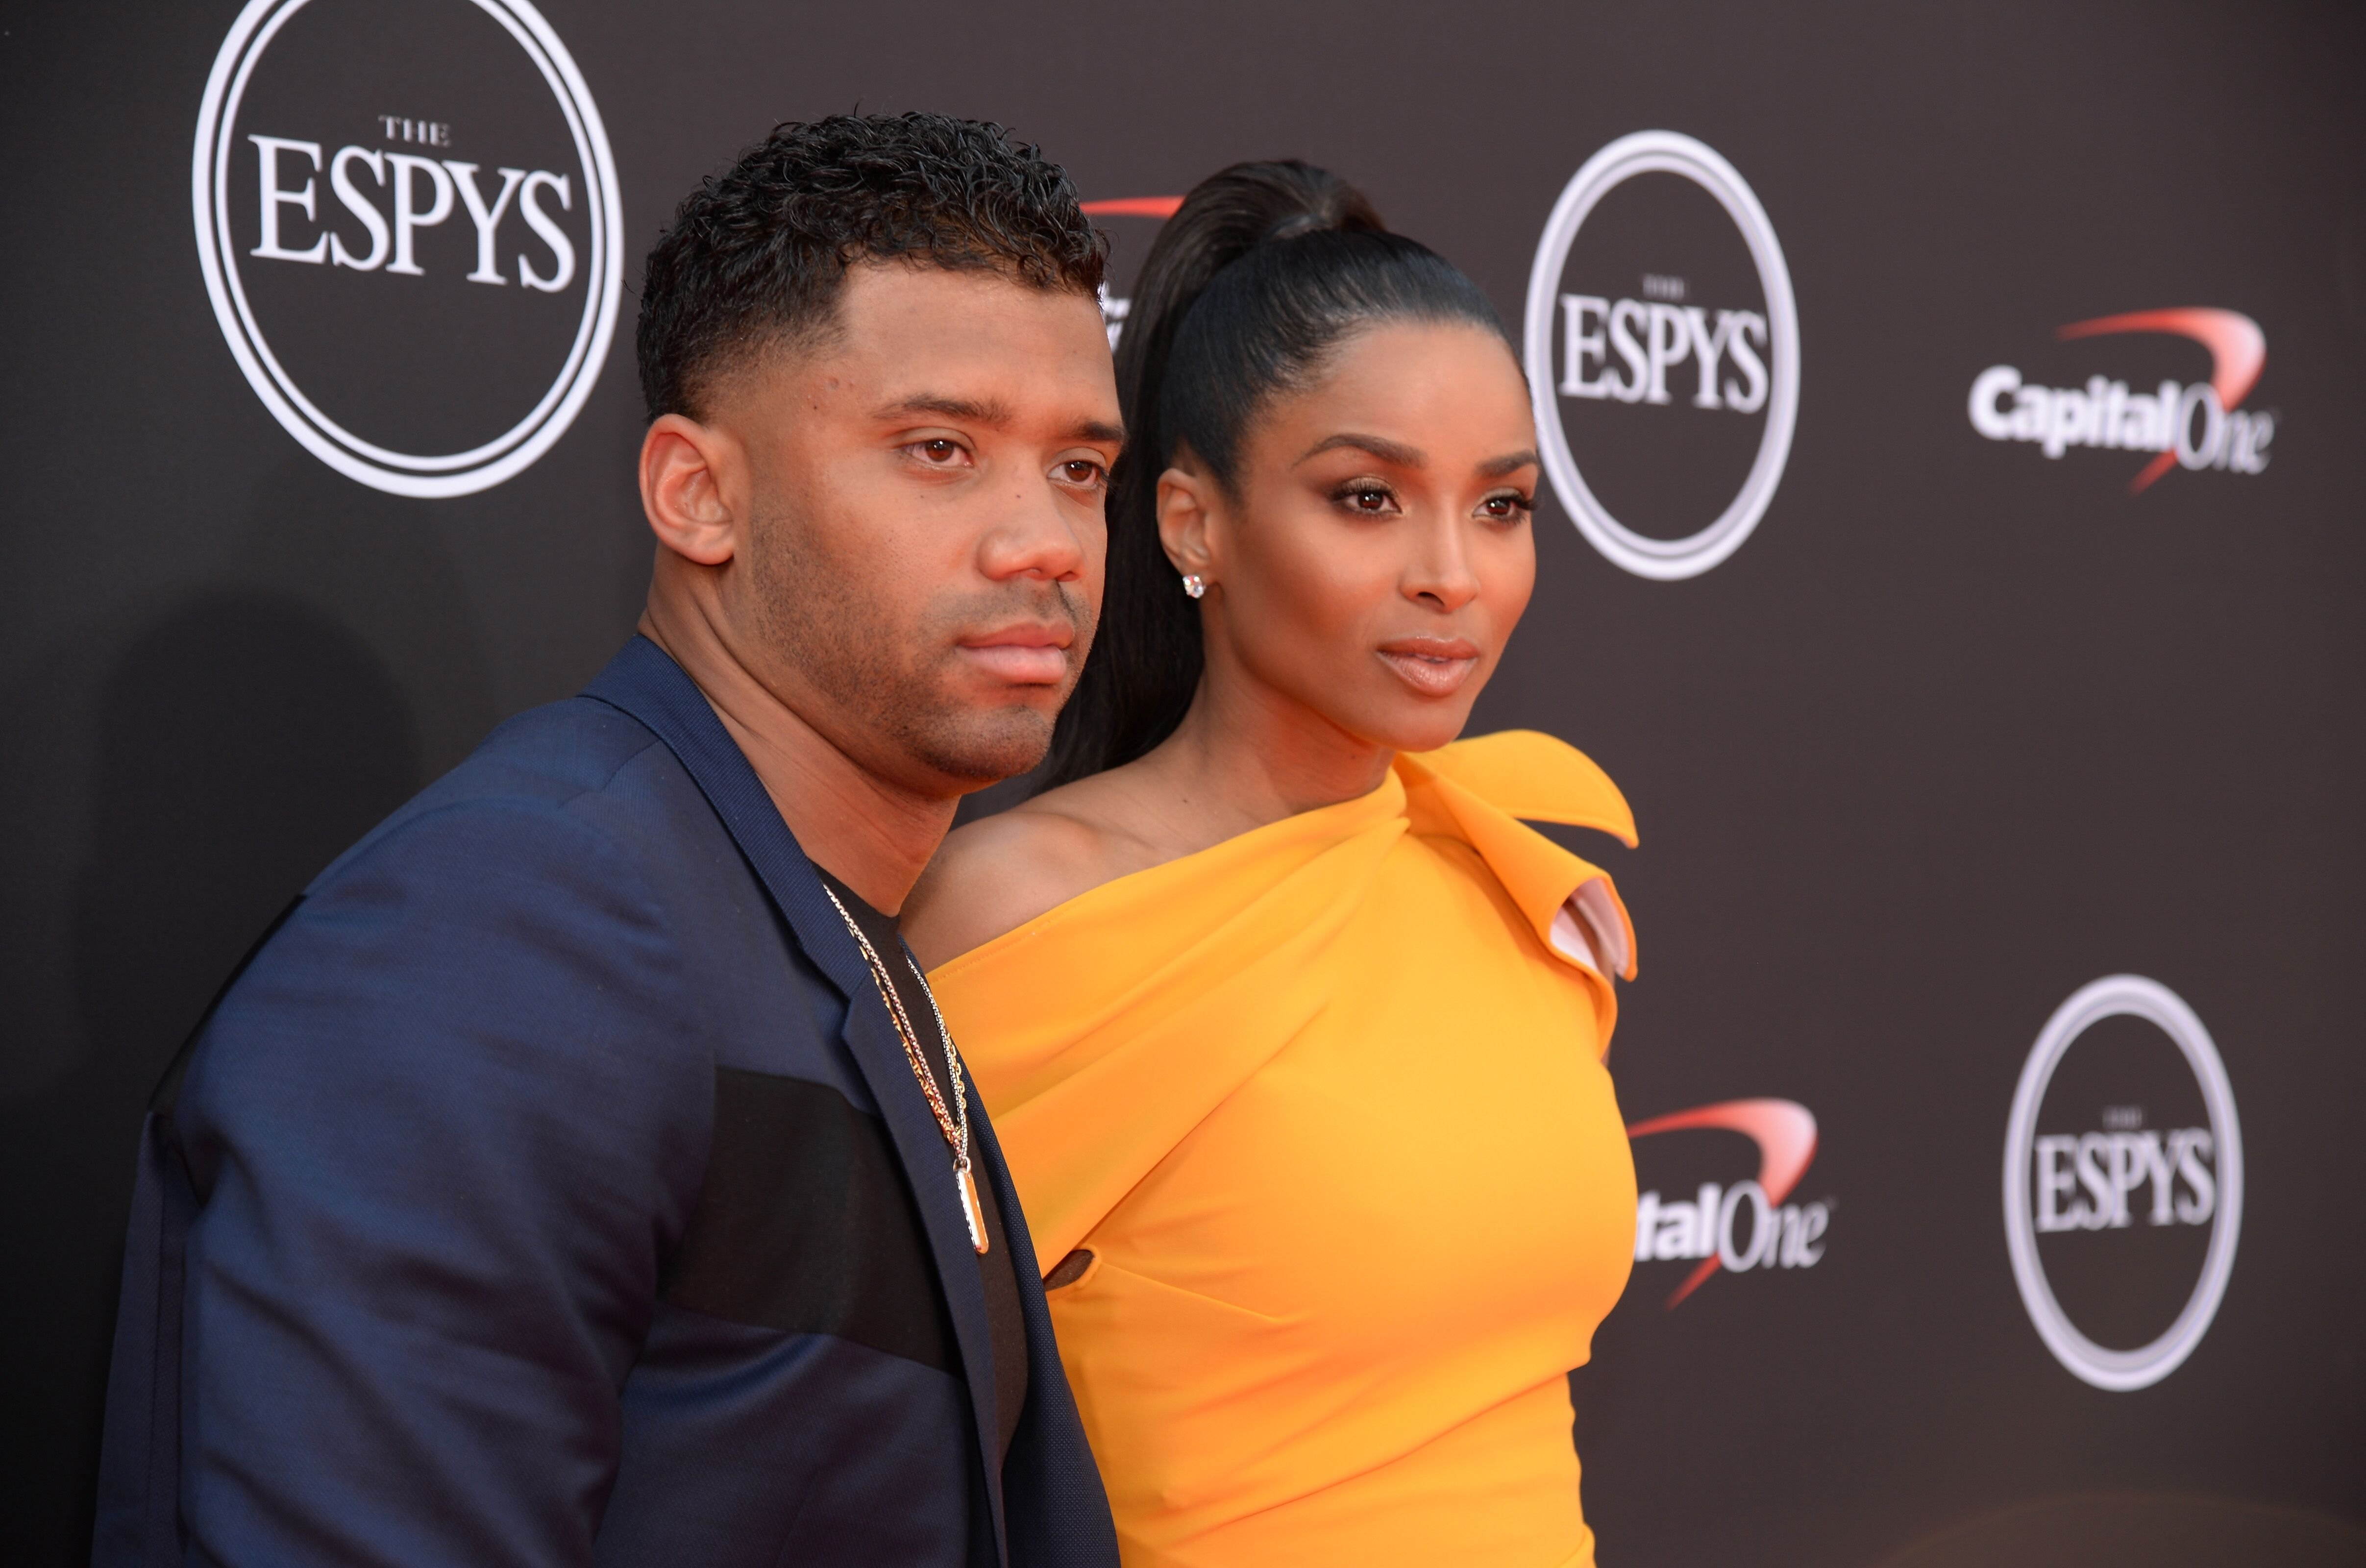 Ciara and Russell Wilson at the ESPY Awards Red Carpet Show at Microsoft Theater on July 18, 2018| Photo: Getty Images